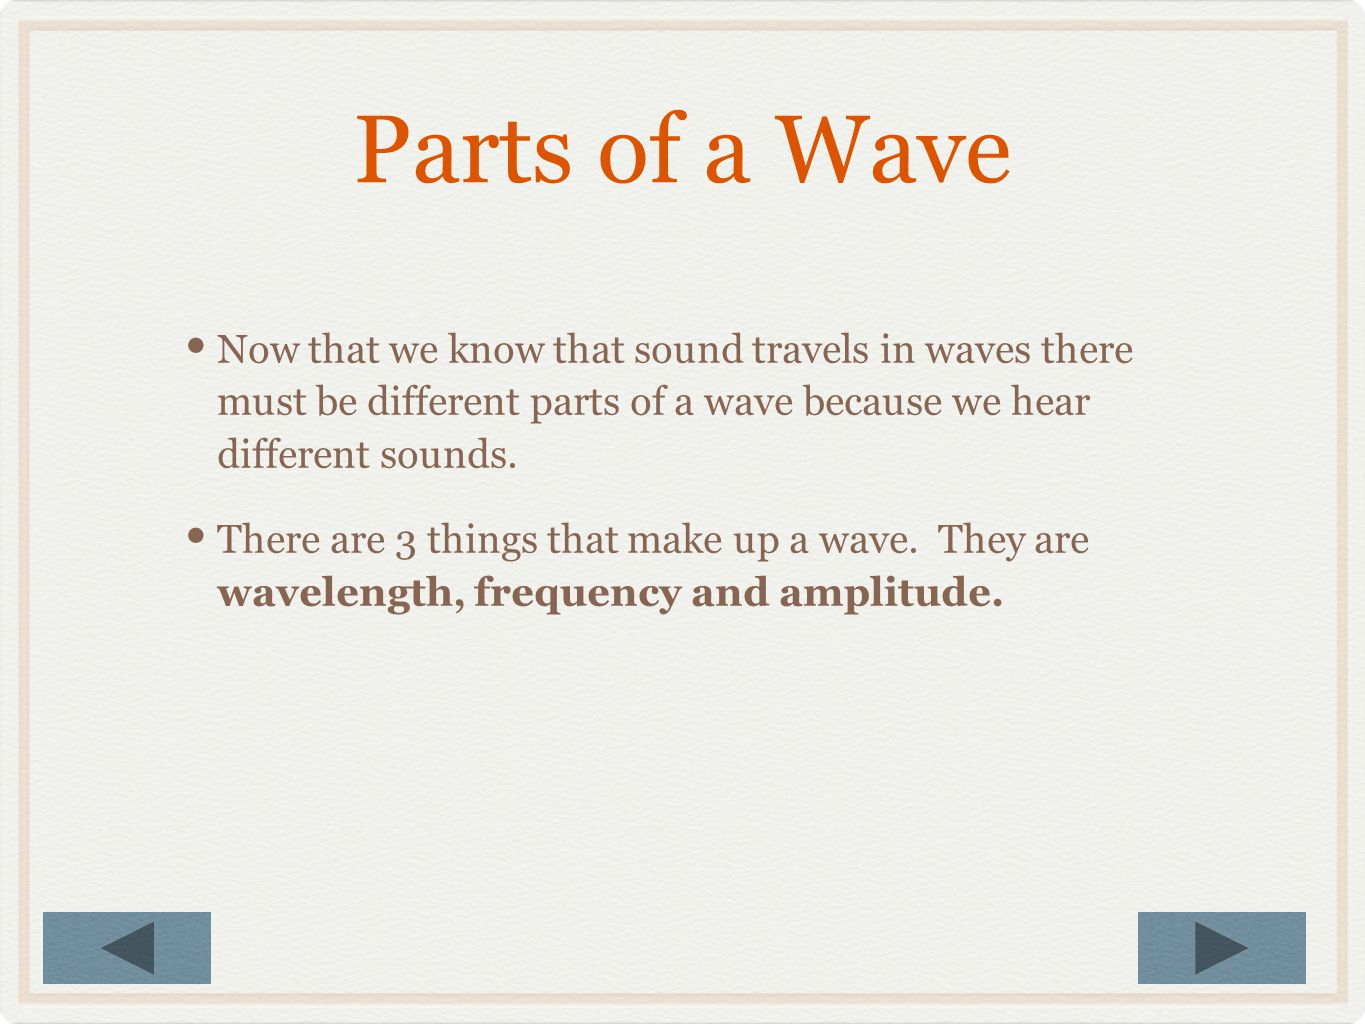 Parts of a Wave Now that we know that sound travels in waves there must be different parts of a wave because we hear different sounds.